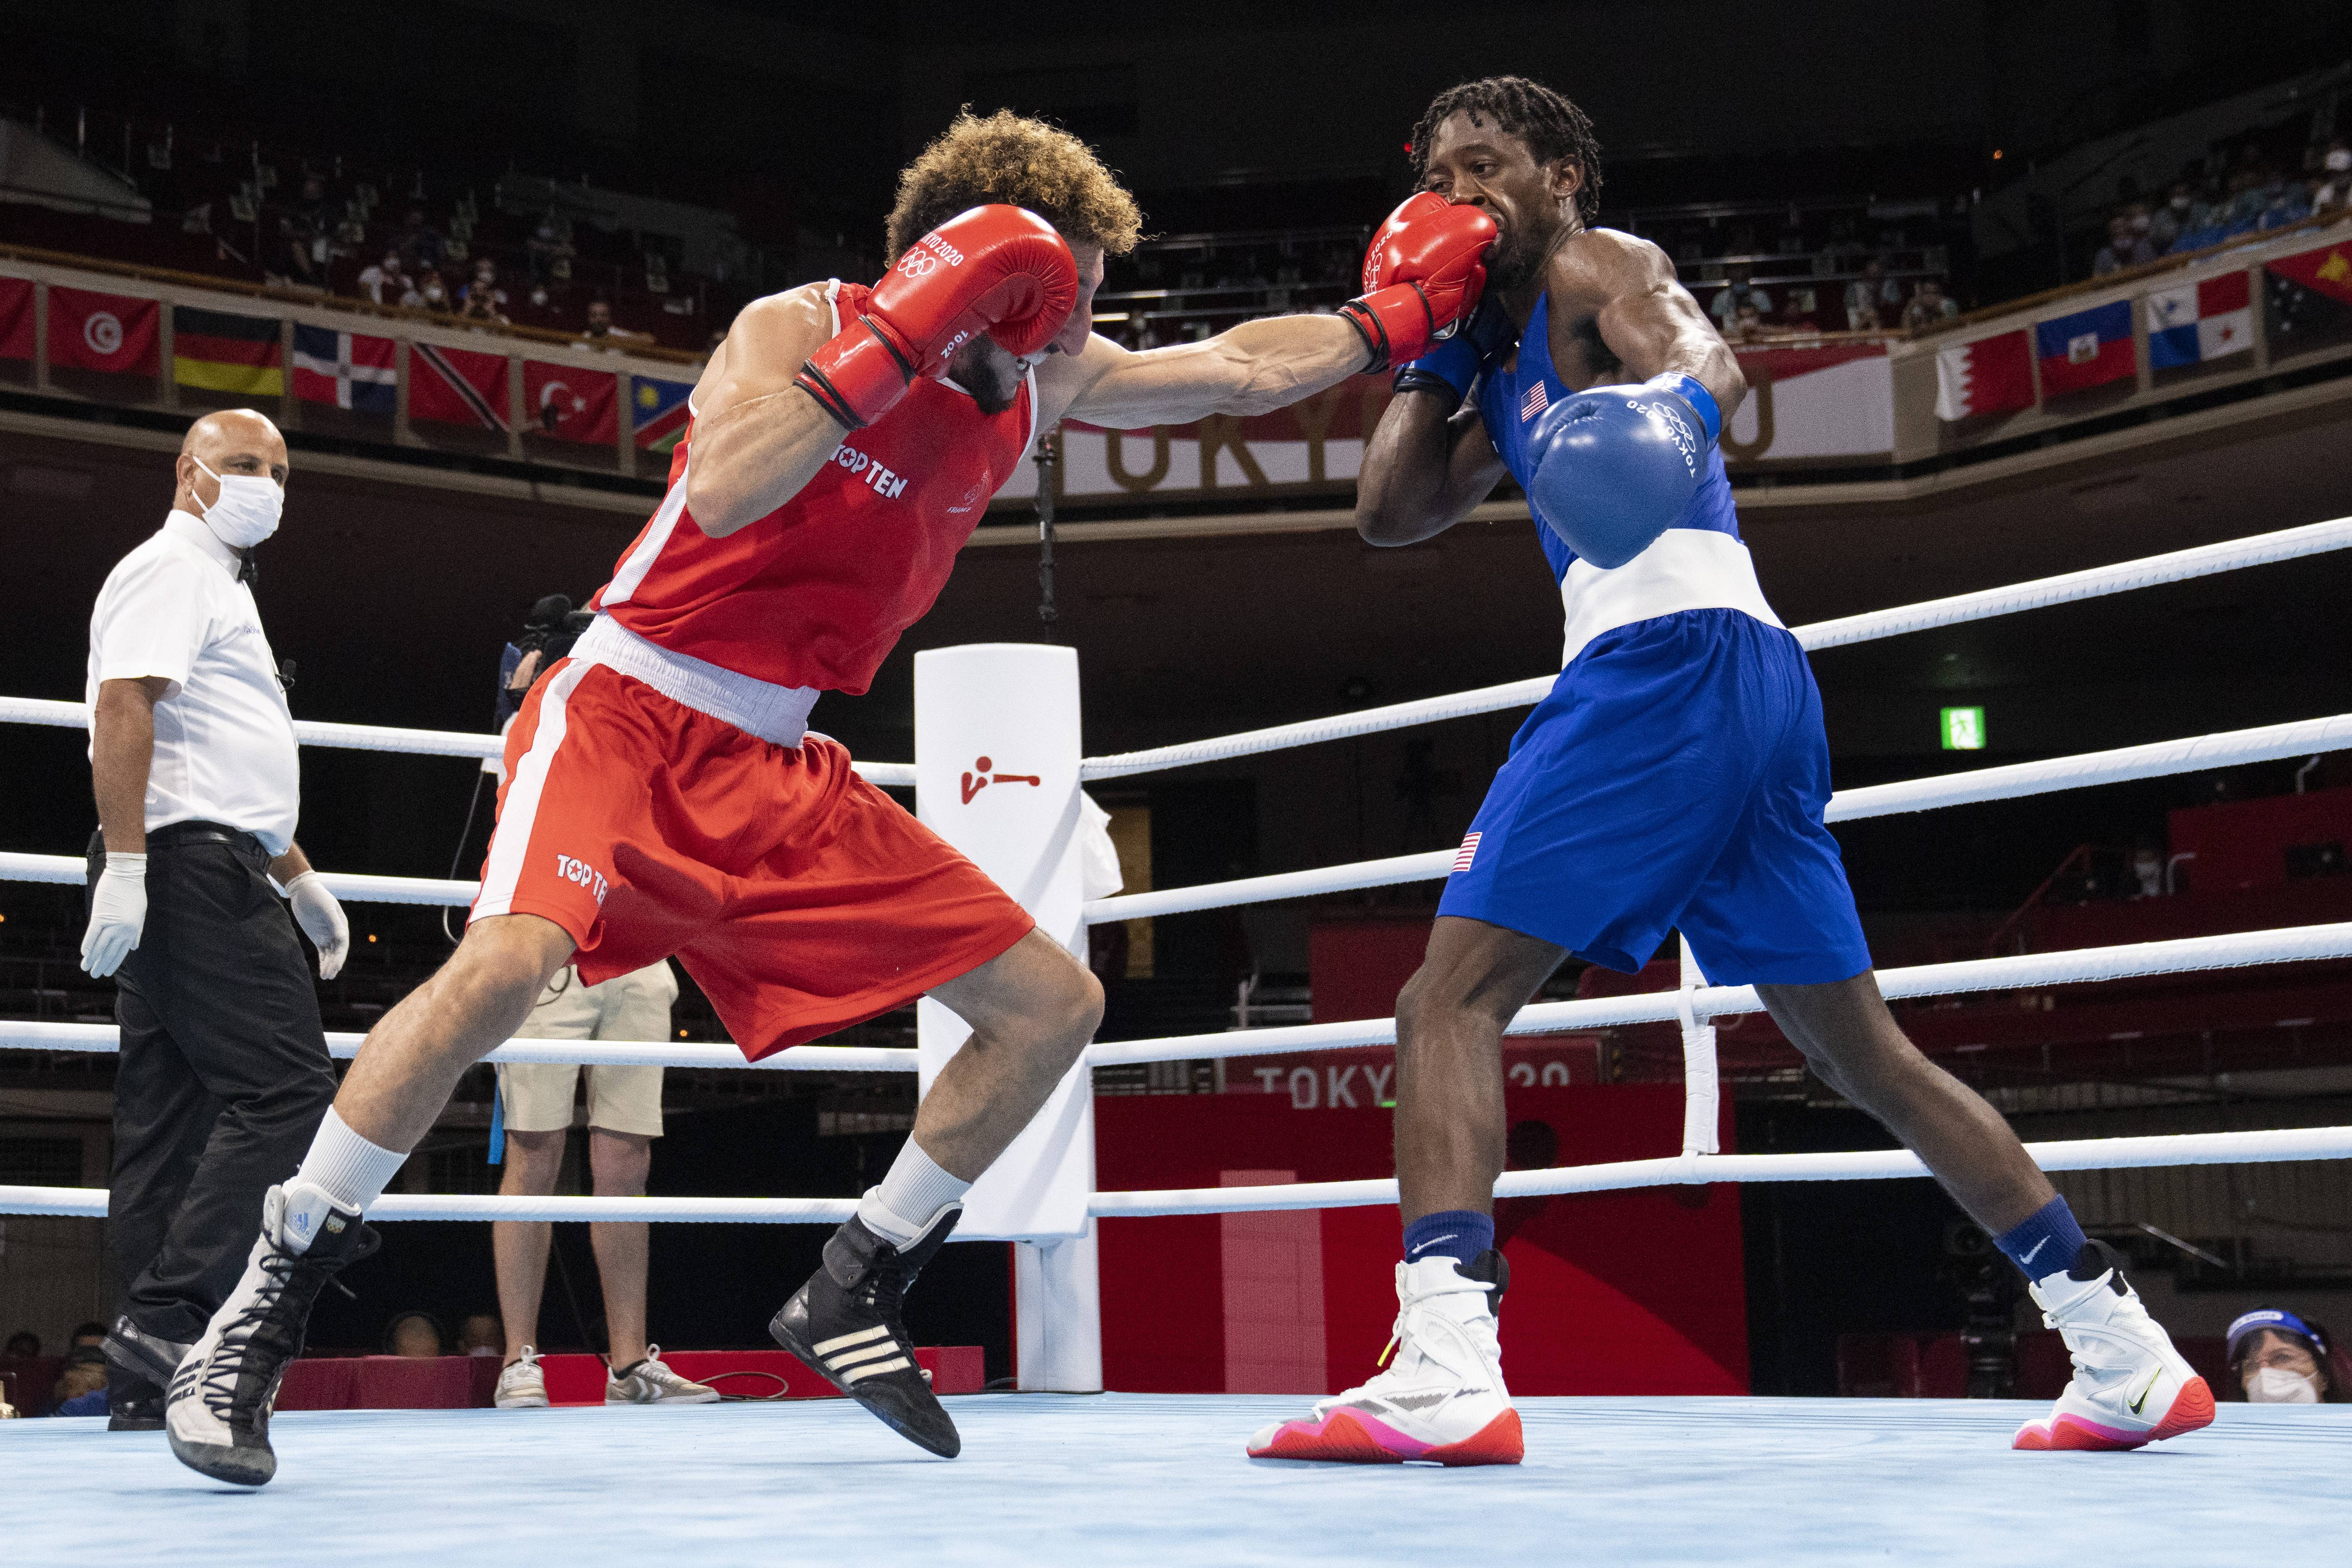 Jul 31, 2021; Tokyo, Japan; Keyshawn Davis (USA), blue gloves, and Sofiane Oumiha (FRA), red gloves, in the Men's Light (57-63kg) preliminaries during the Tokyo 2020 Olympic Summer Games at Kokugikan Arena. Davis won the bout over Oumiha after the referee stopped the contest. Mandatory Credit: Andrew P. Scott-USA TODAY Sports